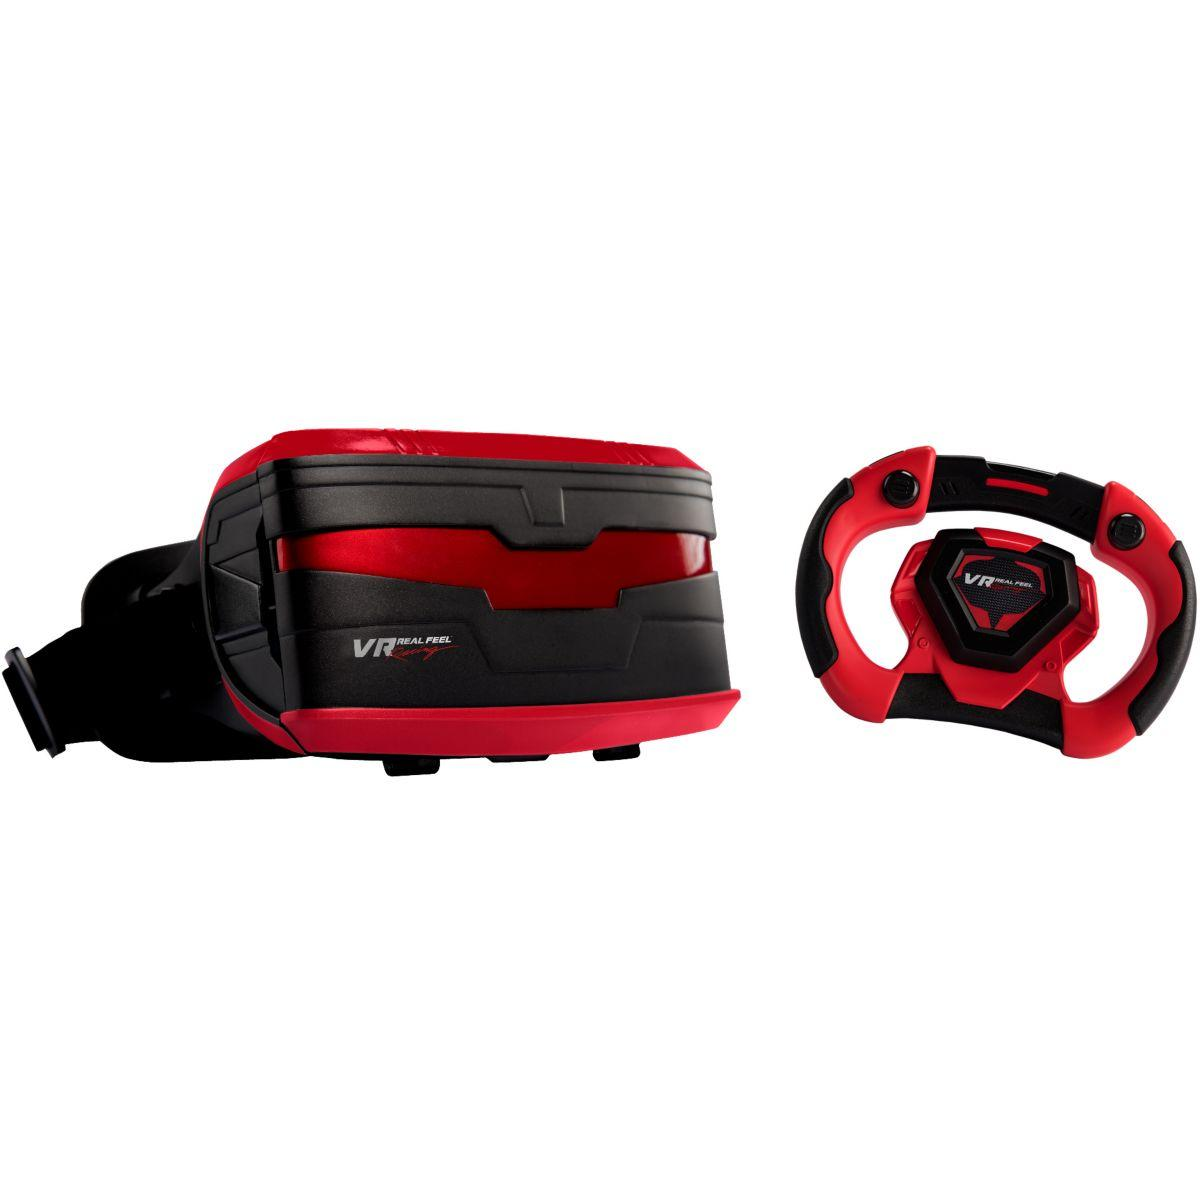 Casque wowwee real feel racing - 15% de remise immédiate avec le code : cool15 (photo)